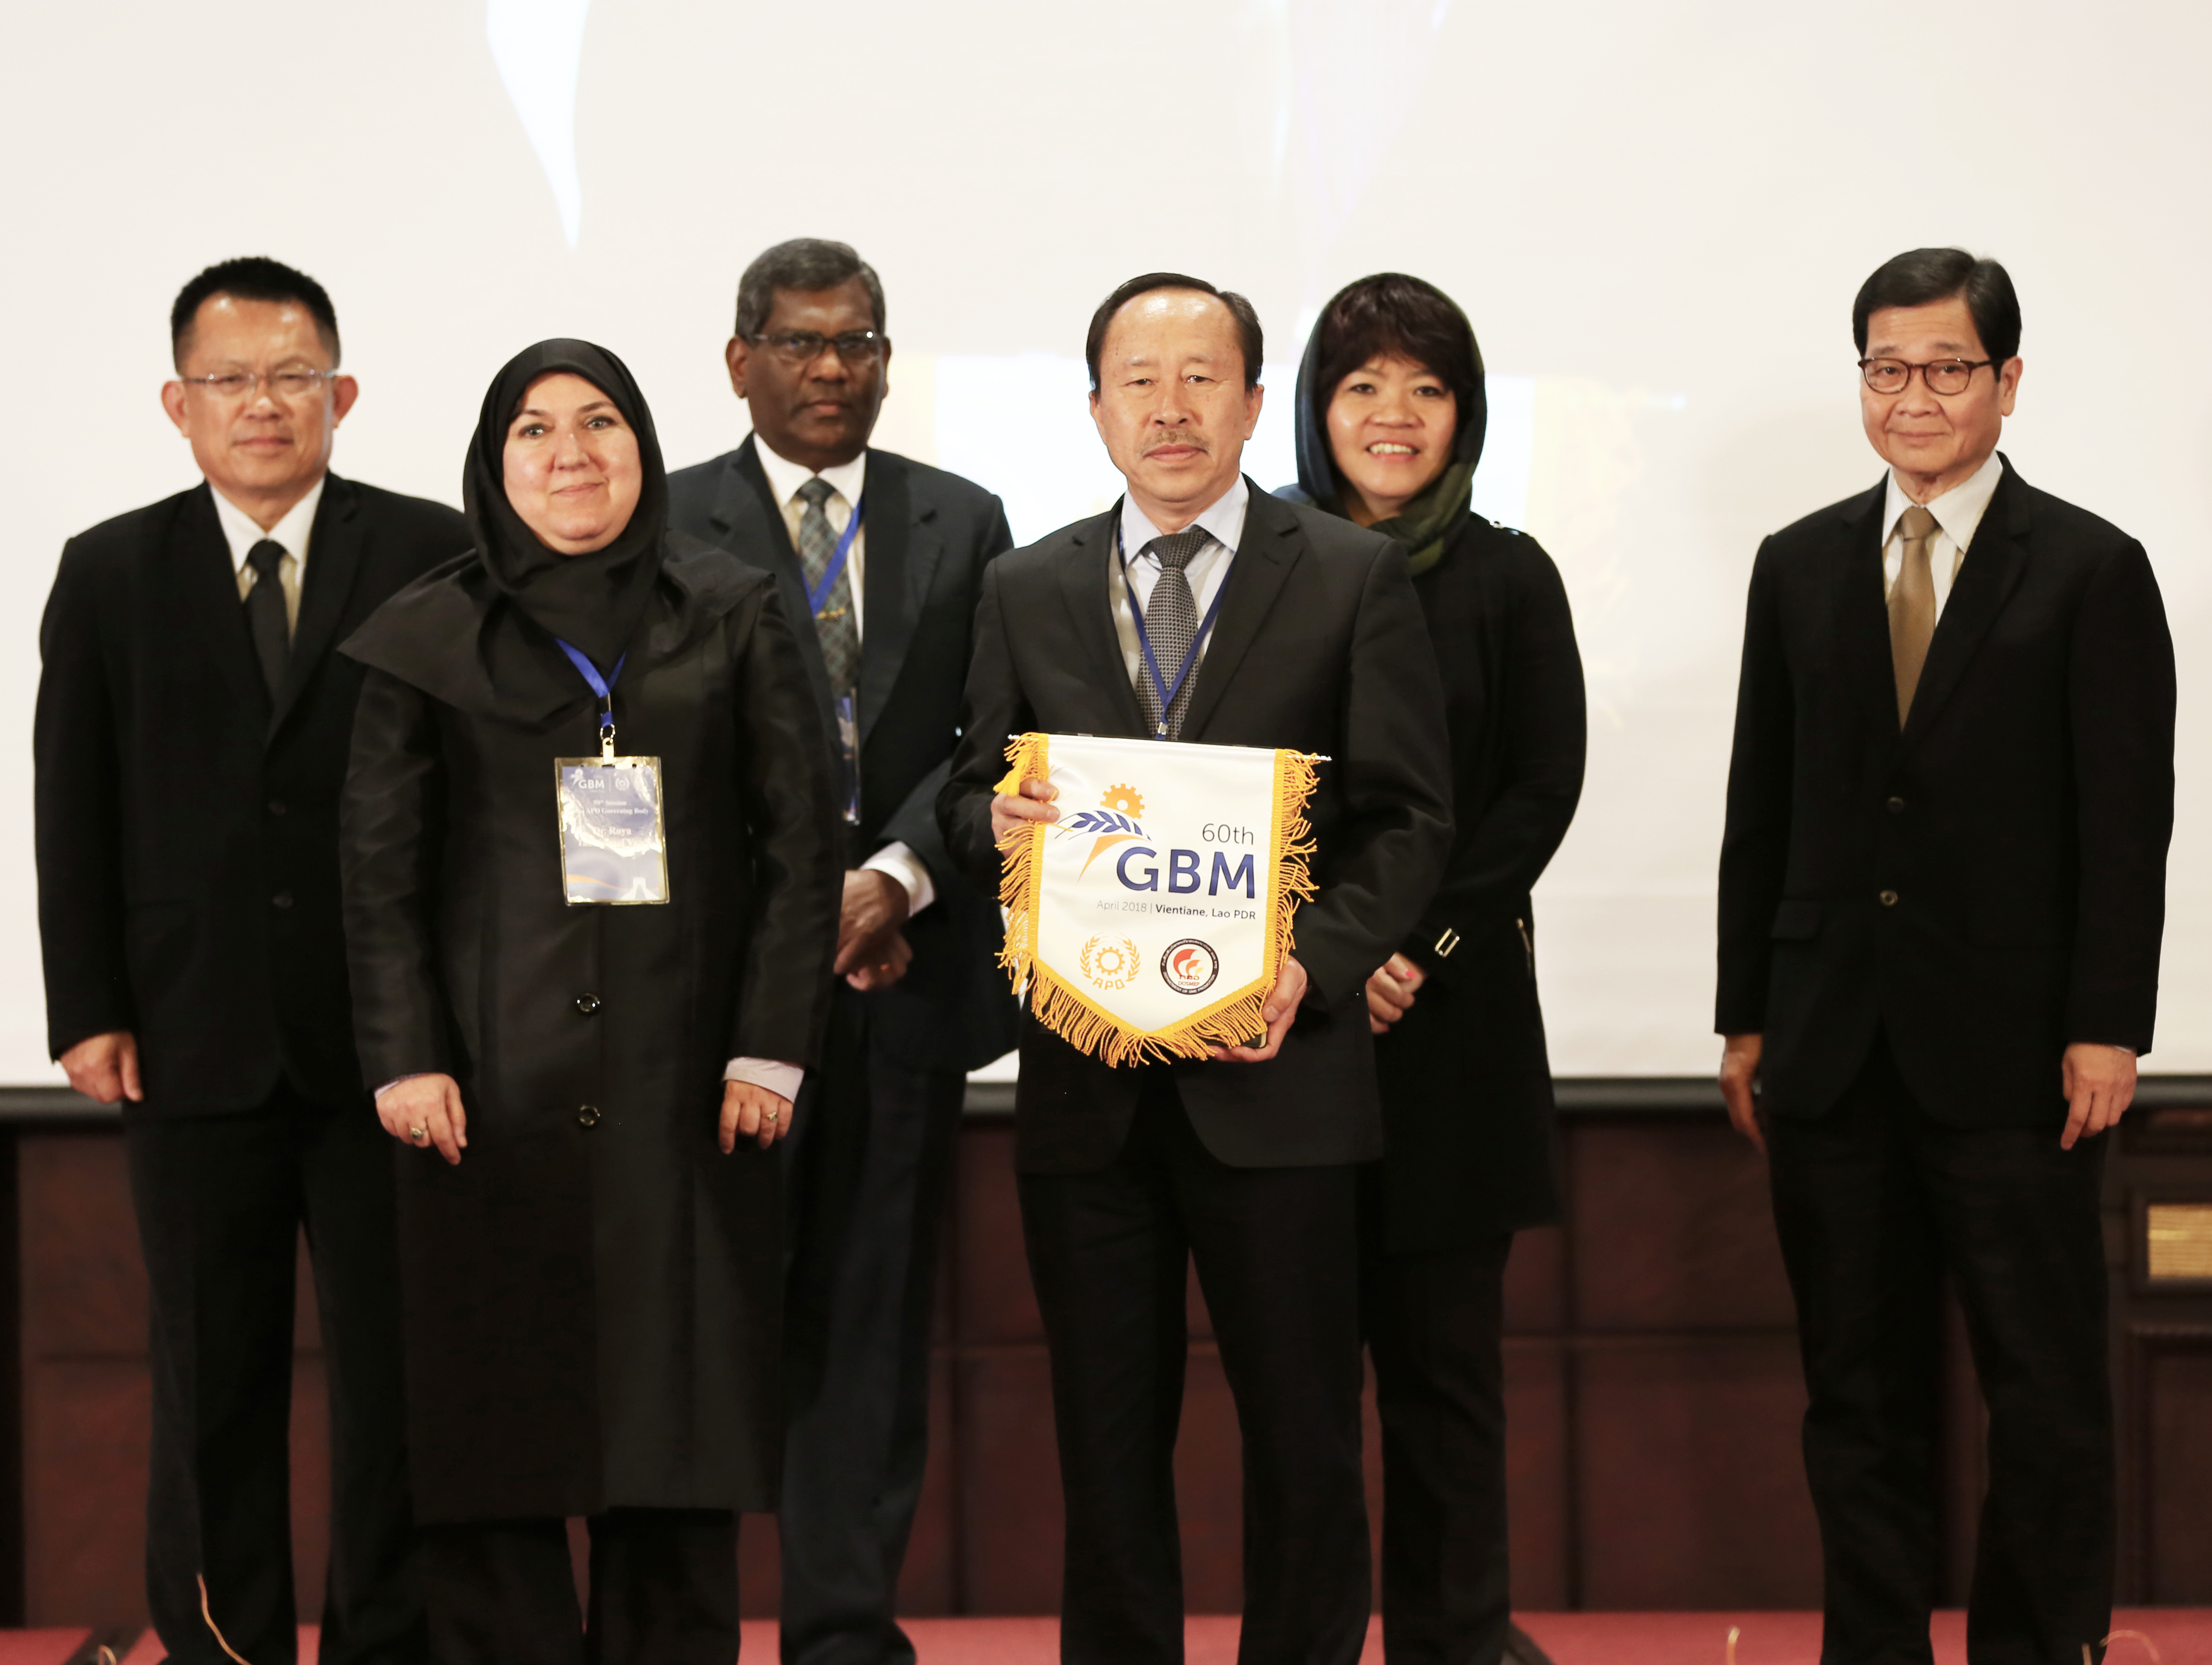 APO Director for IR Iran Dr. Roya Tabatabaei Yazdi (first row L) handing over the GBM flag to 2018 host Lao PDR, represented by APO Director Somdy Inmyxai (R). Looking on were (second row L–R): APO Director for Thailand and Second Vice Chair Dr. Somchai Harnhirun; APO Director for Sri Lanka and First Vice Chair Javigodage Jayadewa Rathnasiri; APO Director for Singapore and Chair Chew Mok Lee; and APO Secretary-General Dr. Santhi Kanoktanaporn.